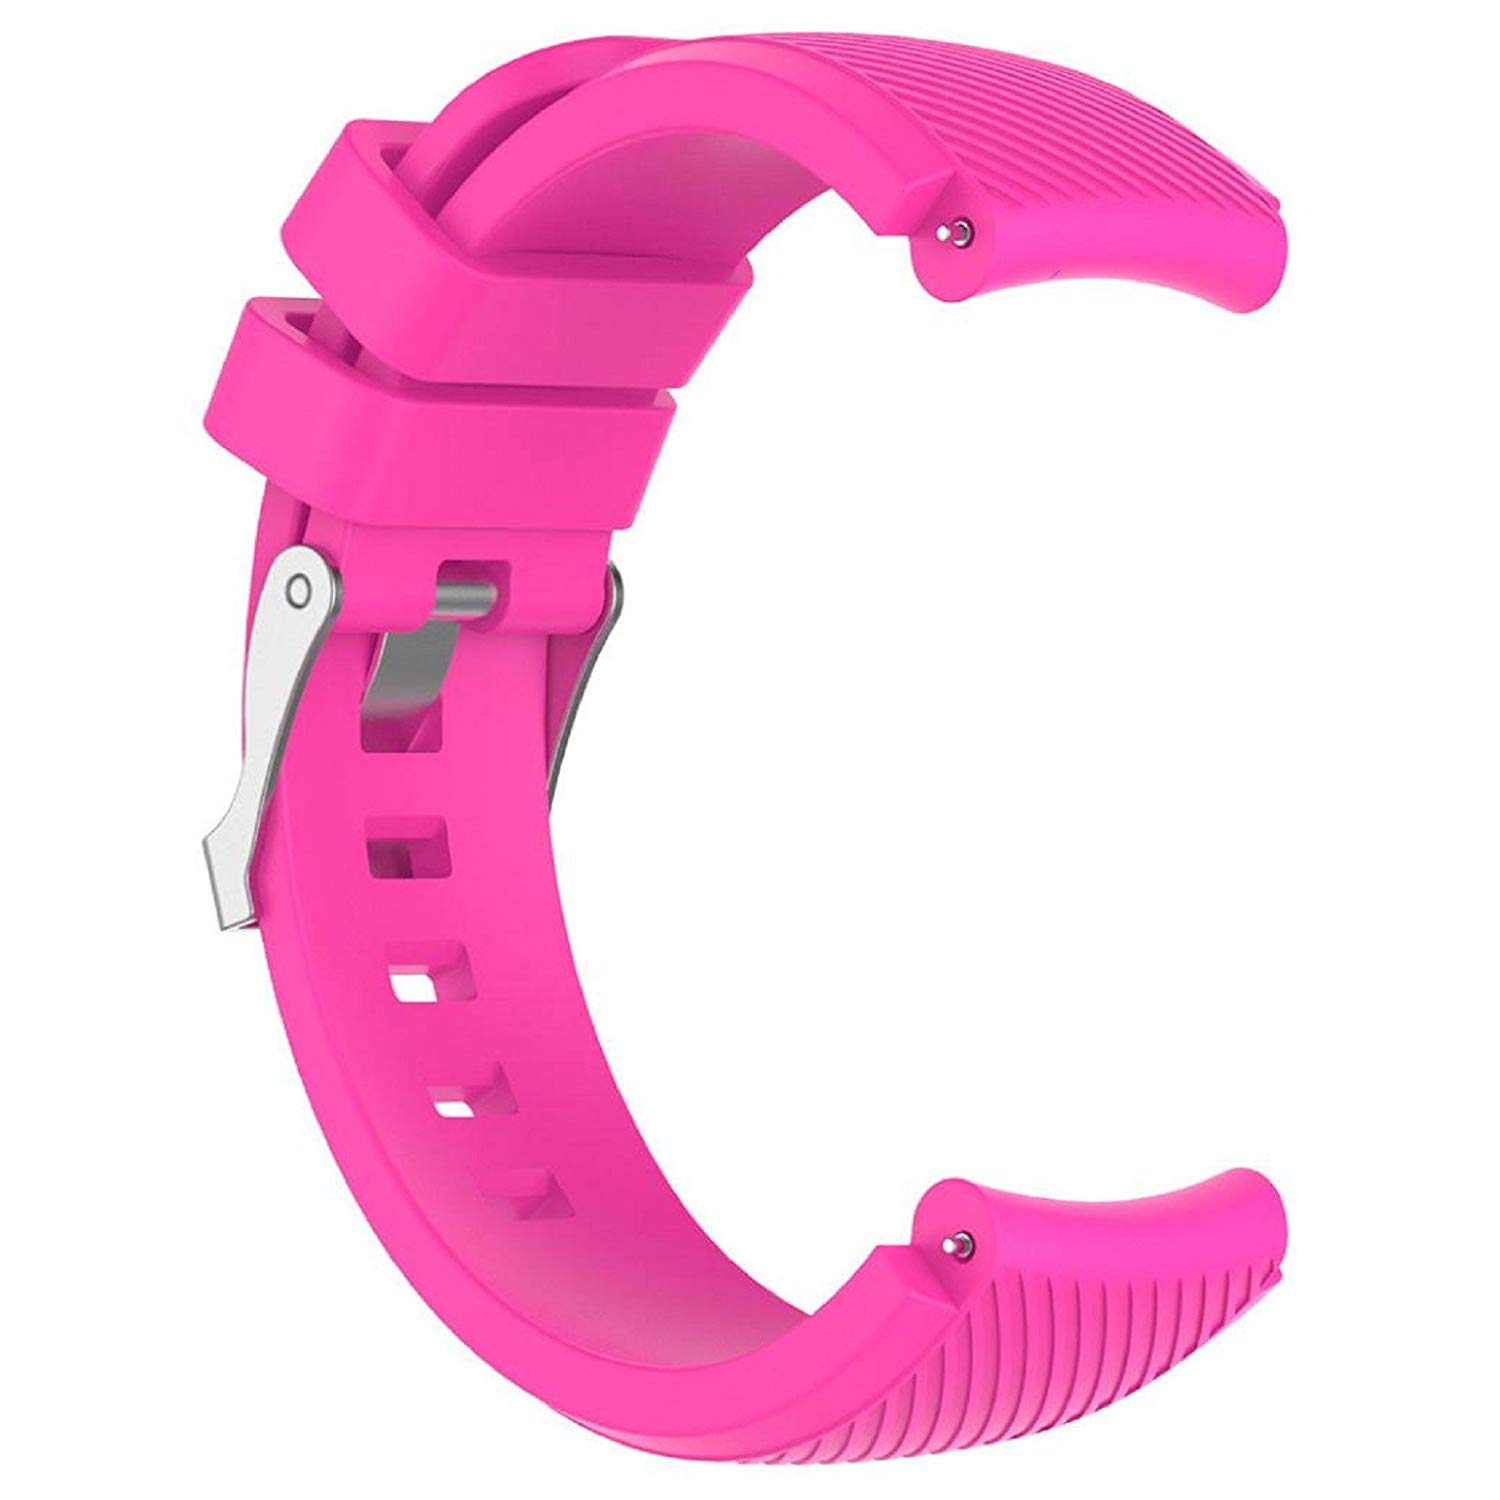 Owill Replacement Soft Comfortable Silicone Sports Watch Band Wrist Strap For HUAMI Amazfit Stratos Smart Watch 2 (Hot Pink)